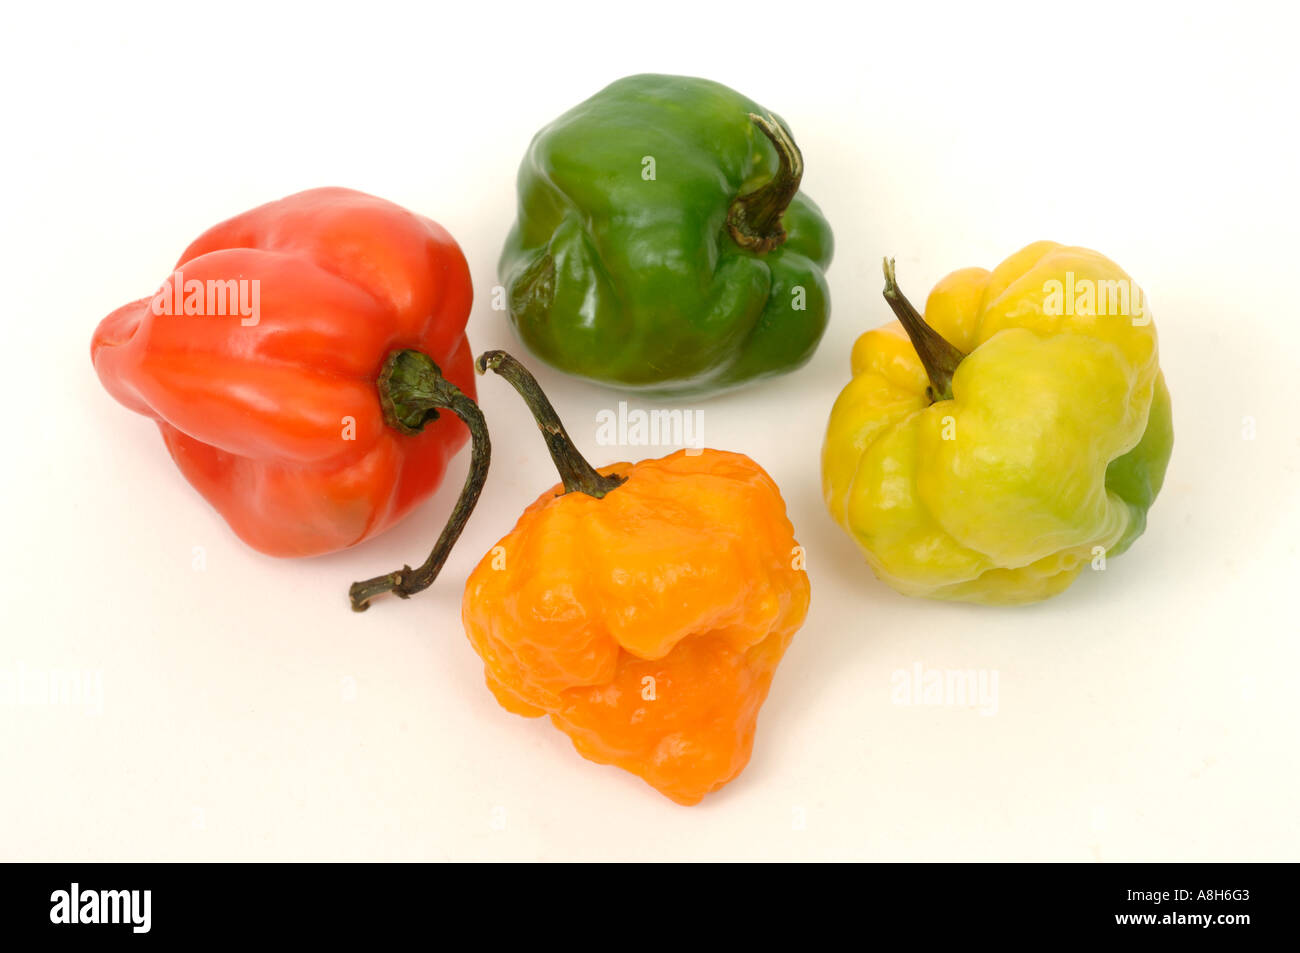 Vegetable produce typical supermarket bought Scotch bonnet chilli peppers Stock Photo